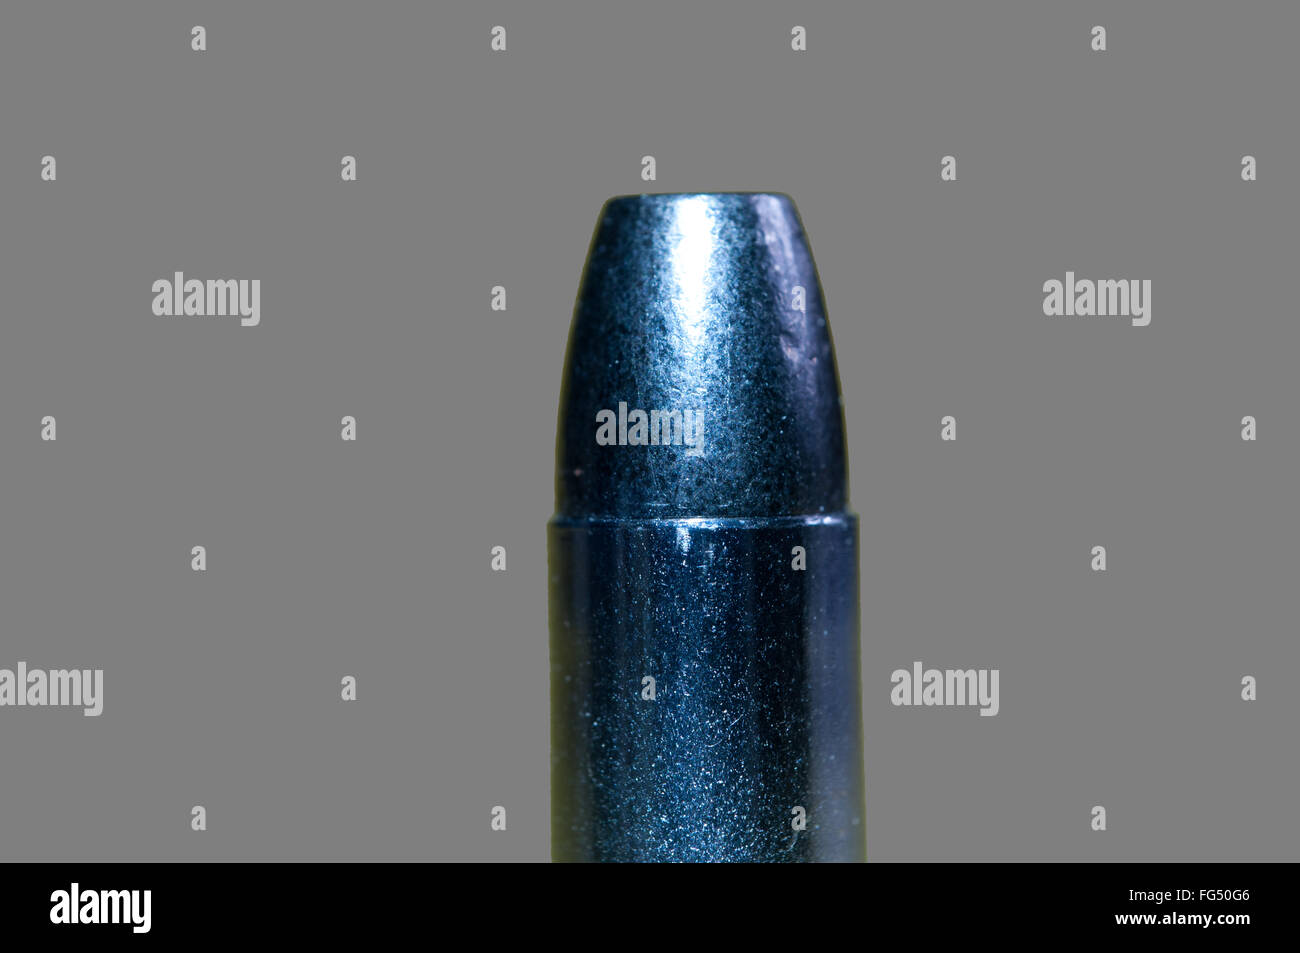 9 millimeter hollow point bullets used for hunting and self defense